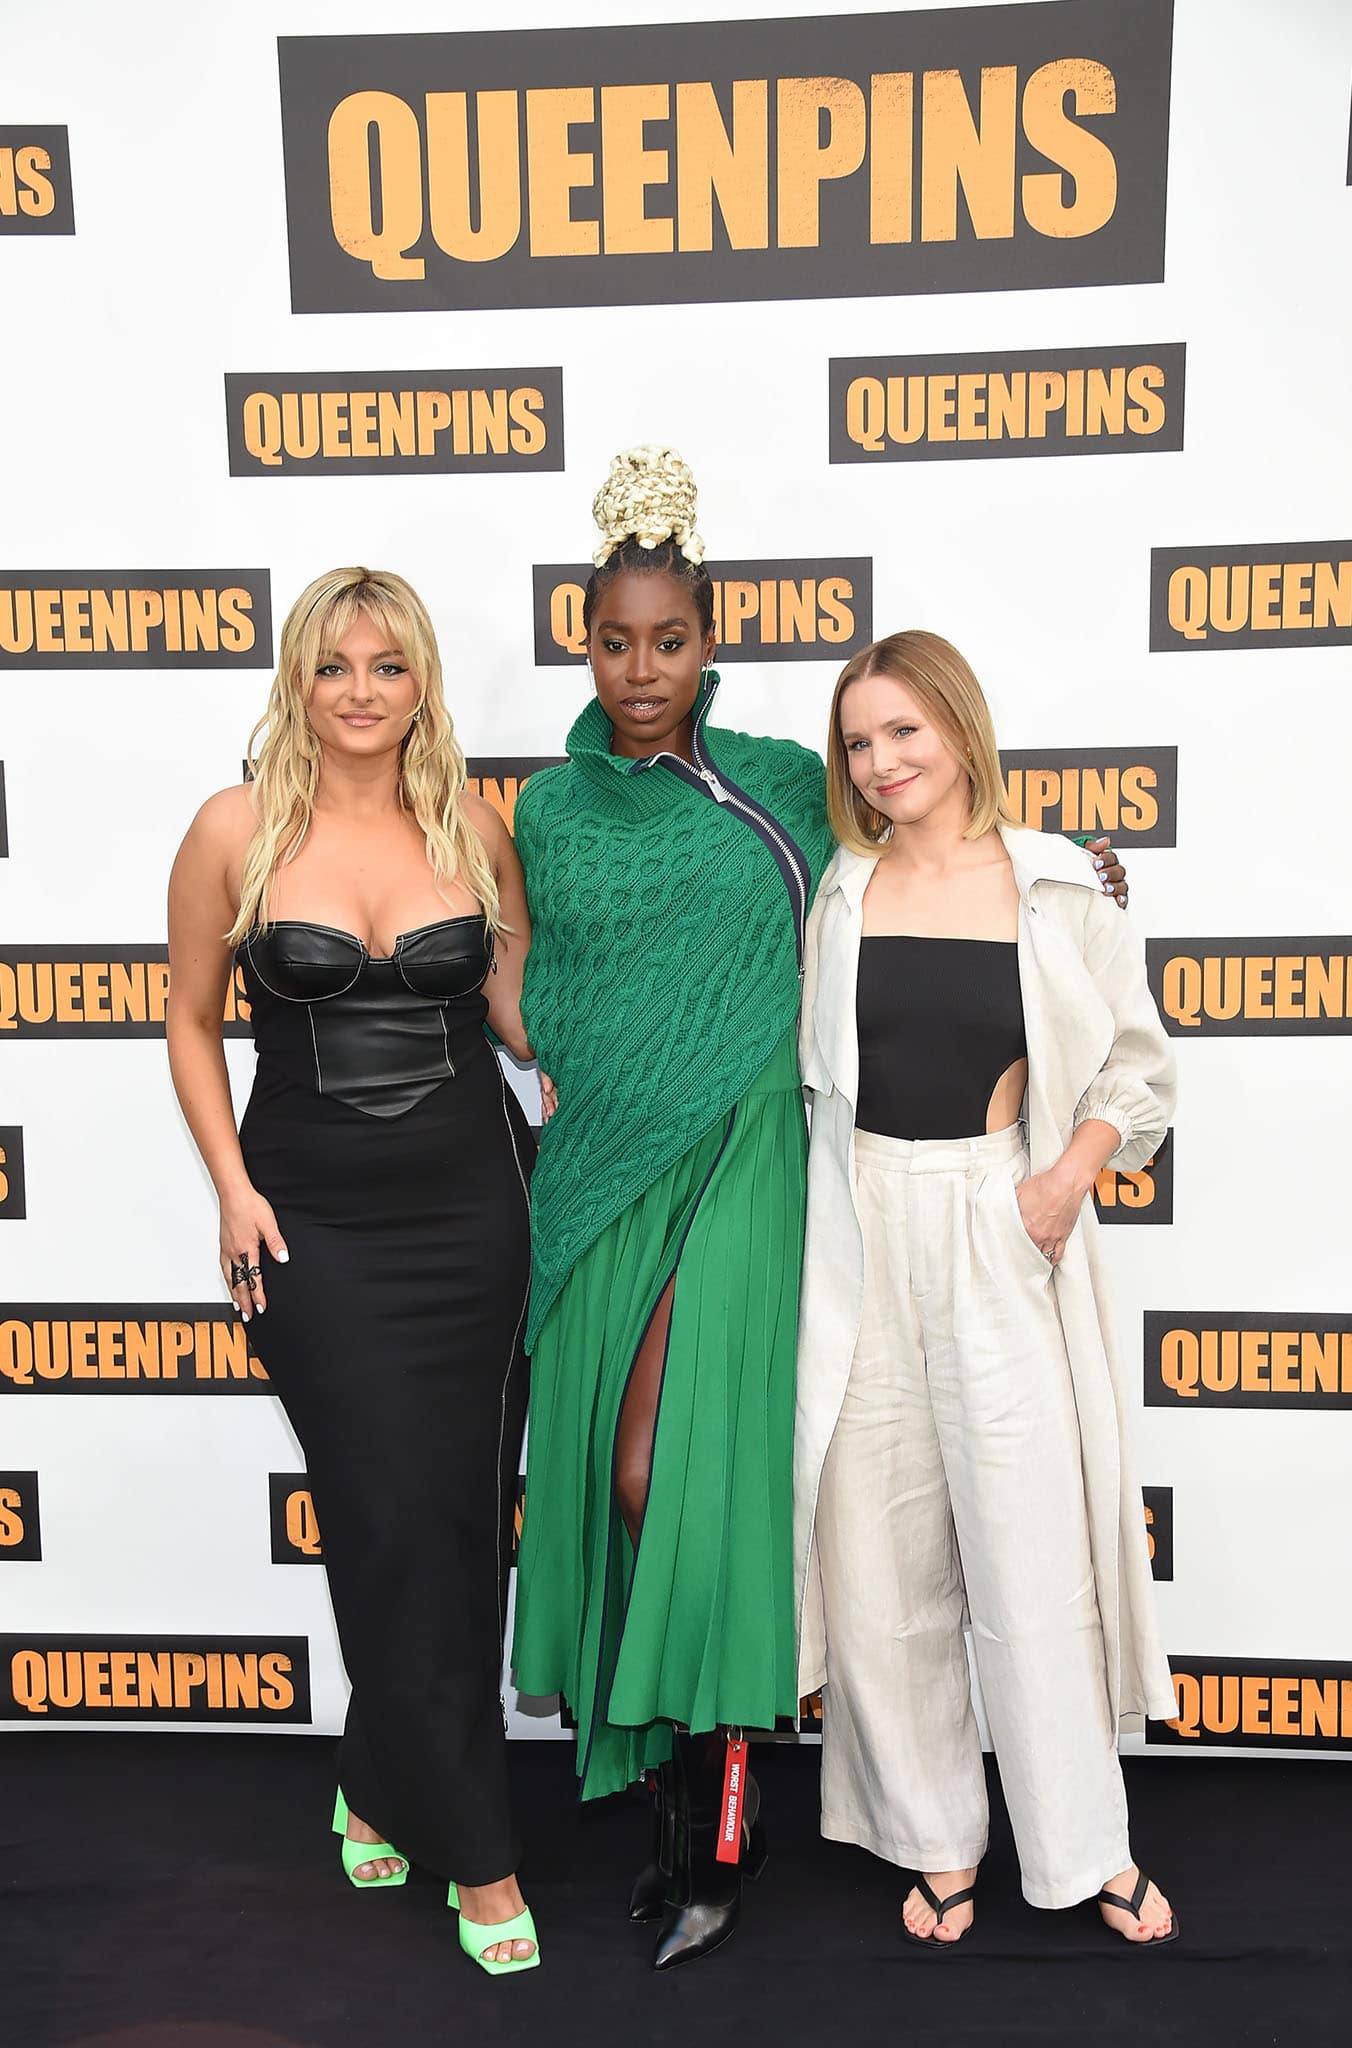 Bebe Rexha, Kirby Howell-Baptiste and Kristen Bell at STX films Queenpins photocall held at the Four Seasons Hotel Beverly Hills on August 25, 2021